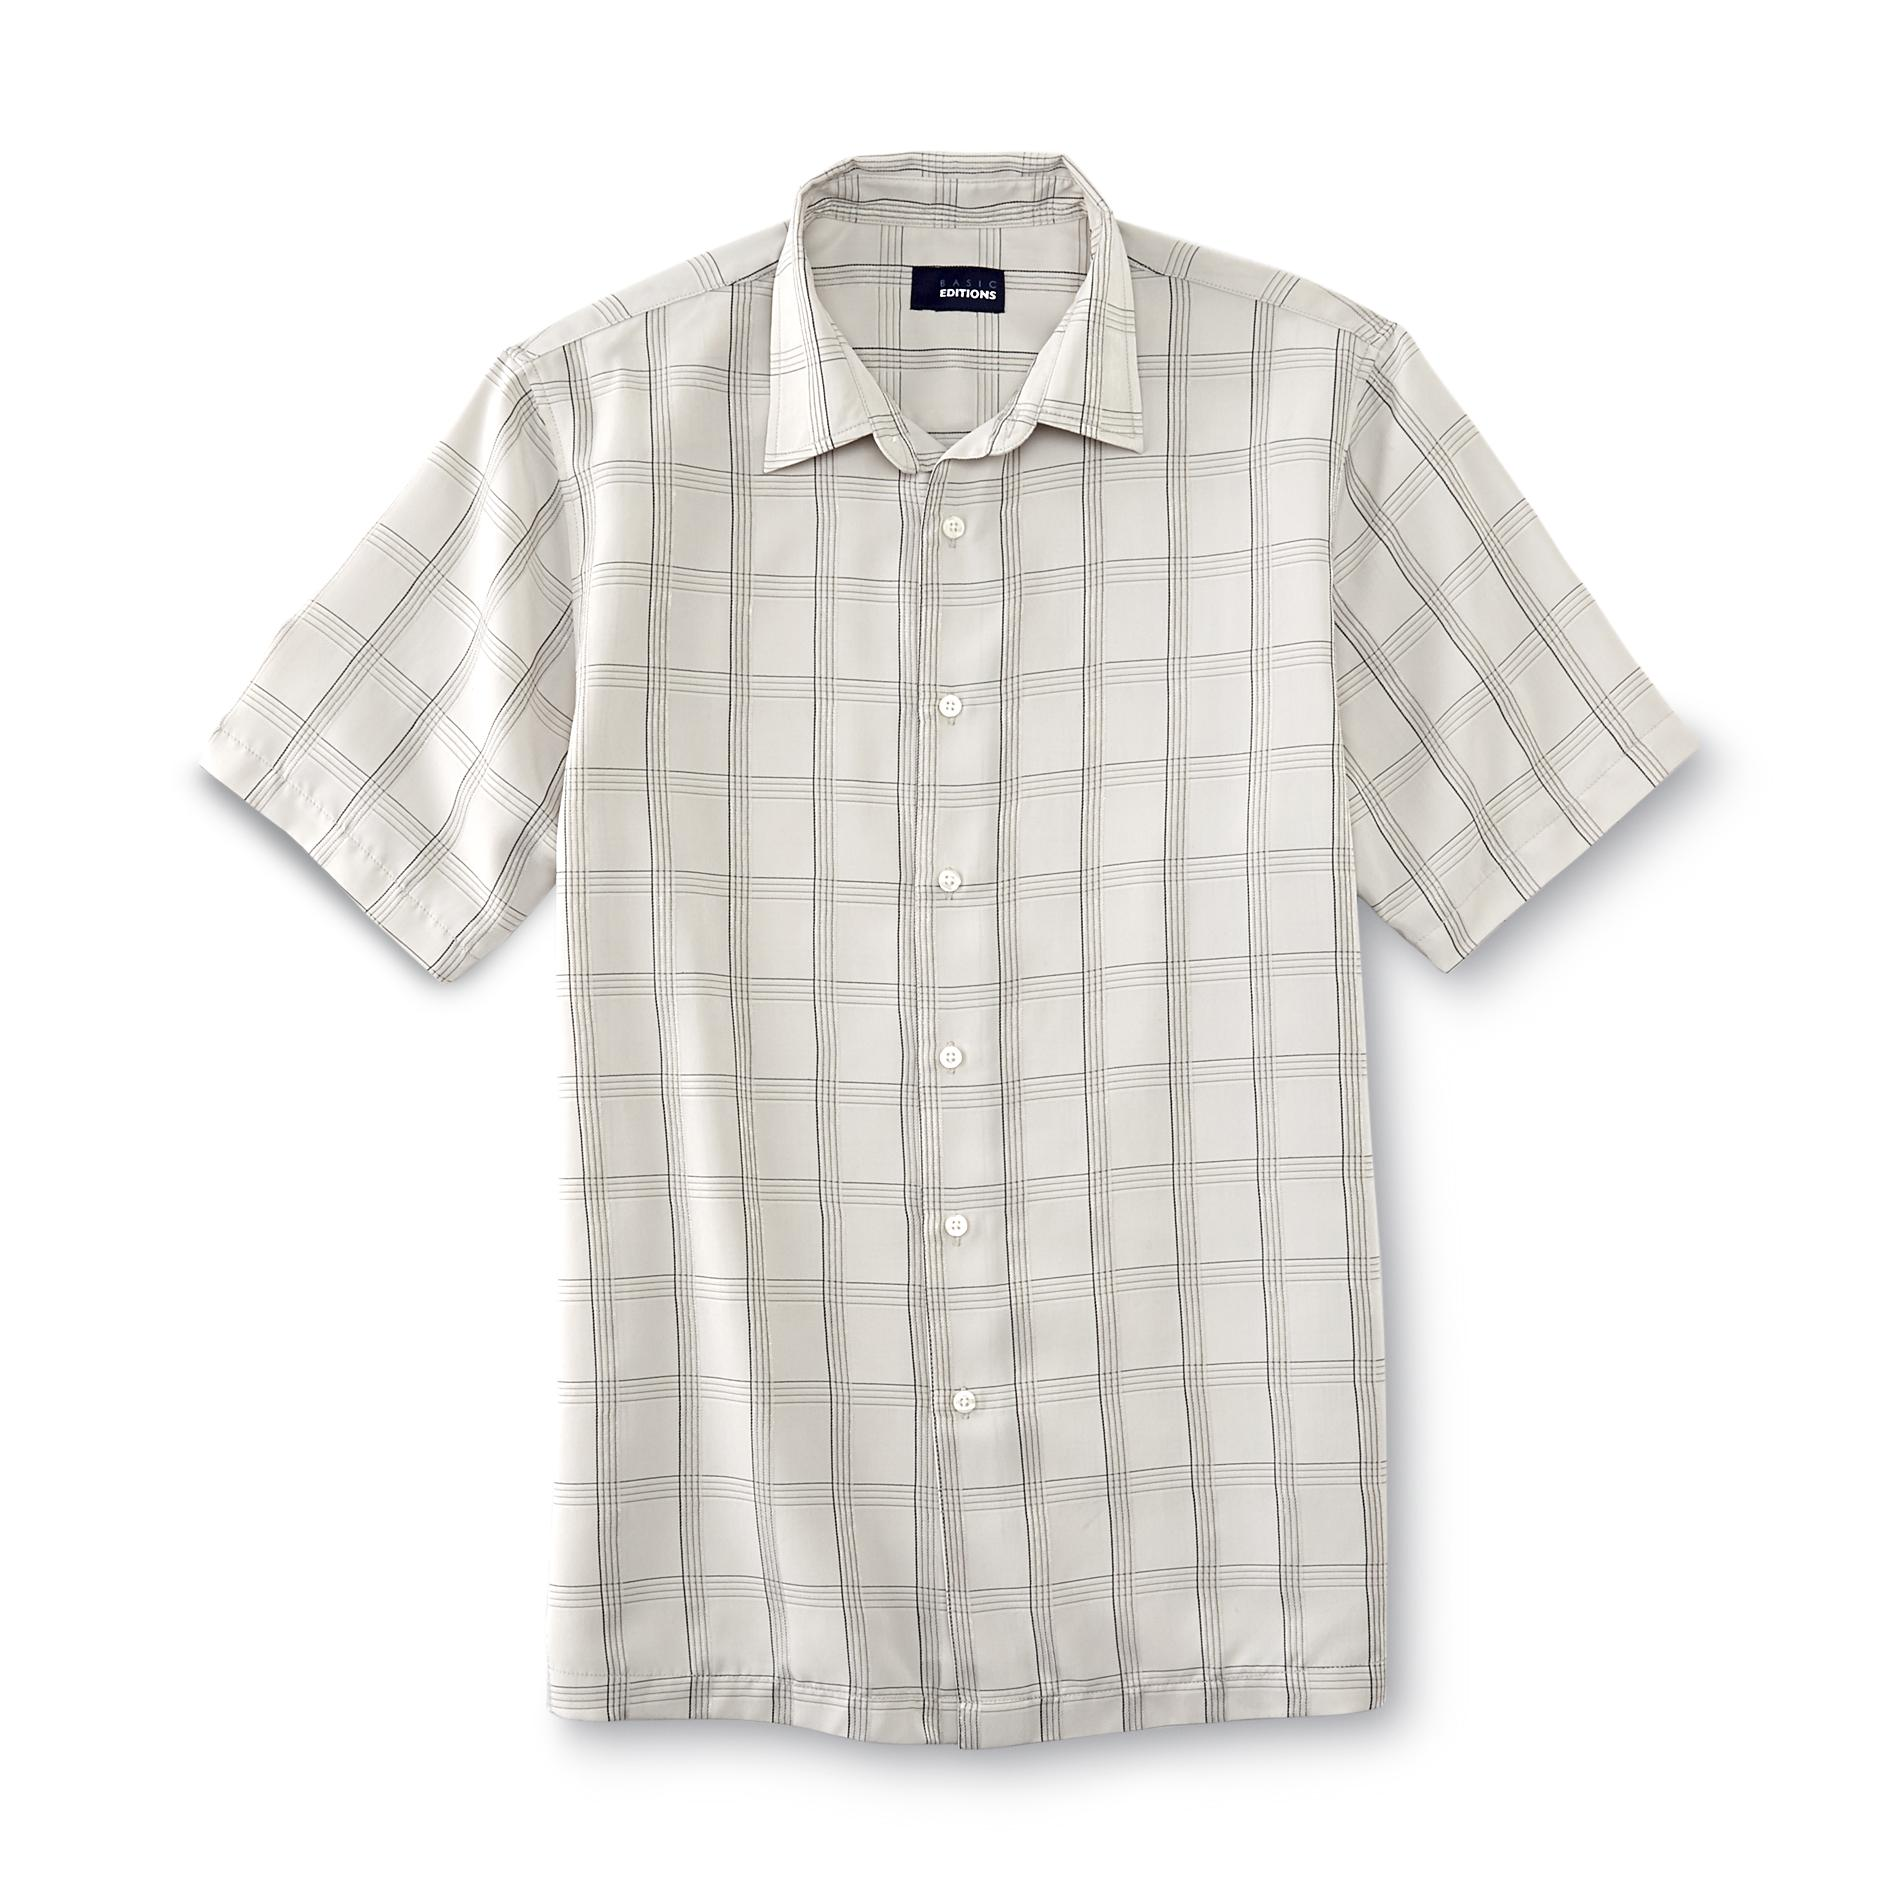 Basic Editions Men's Button-Front Dress Shirt - Windowpane